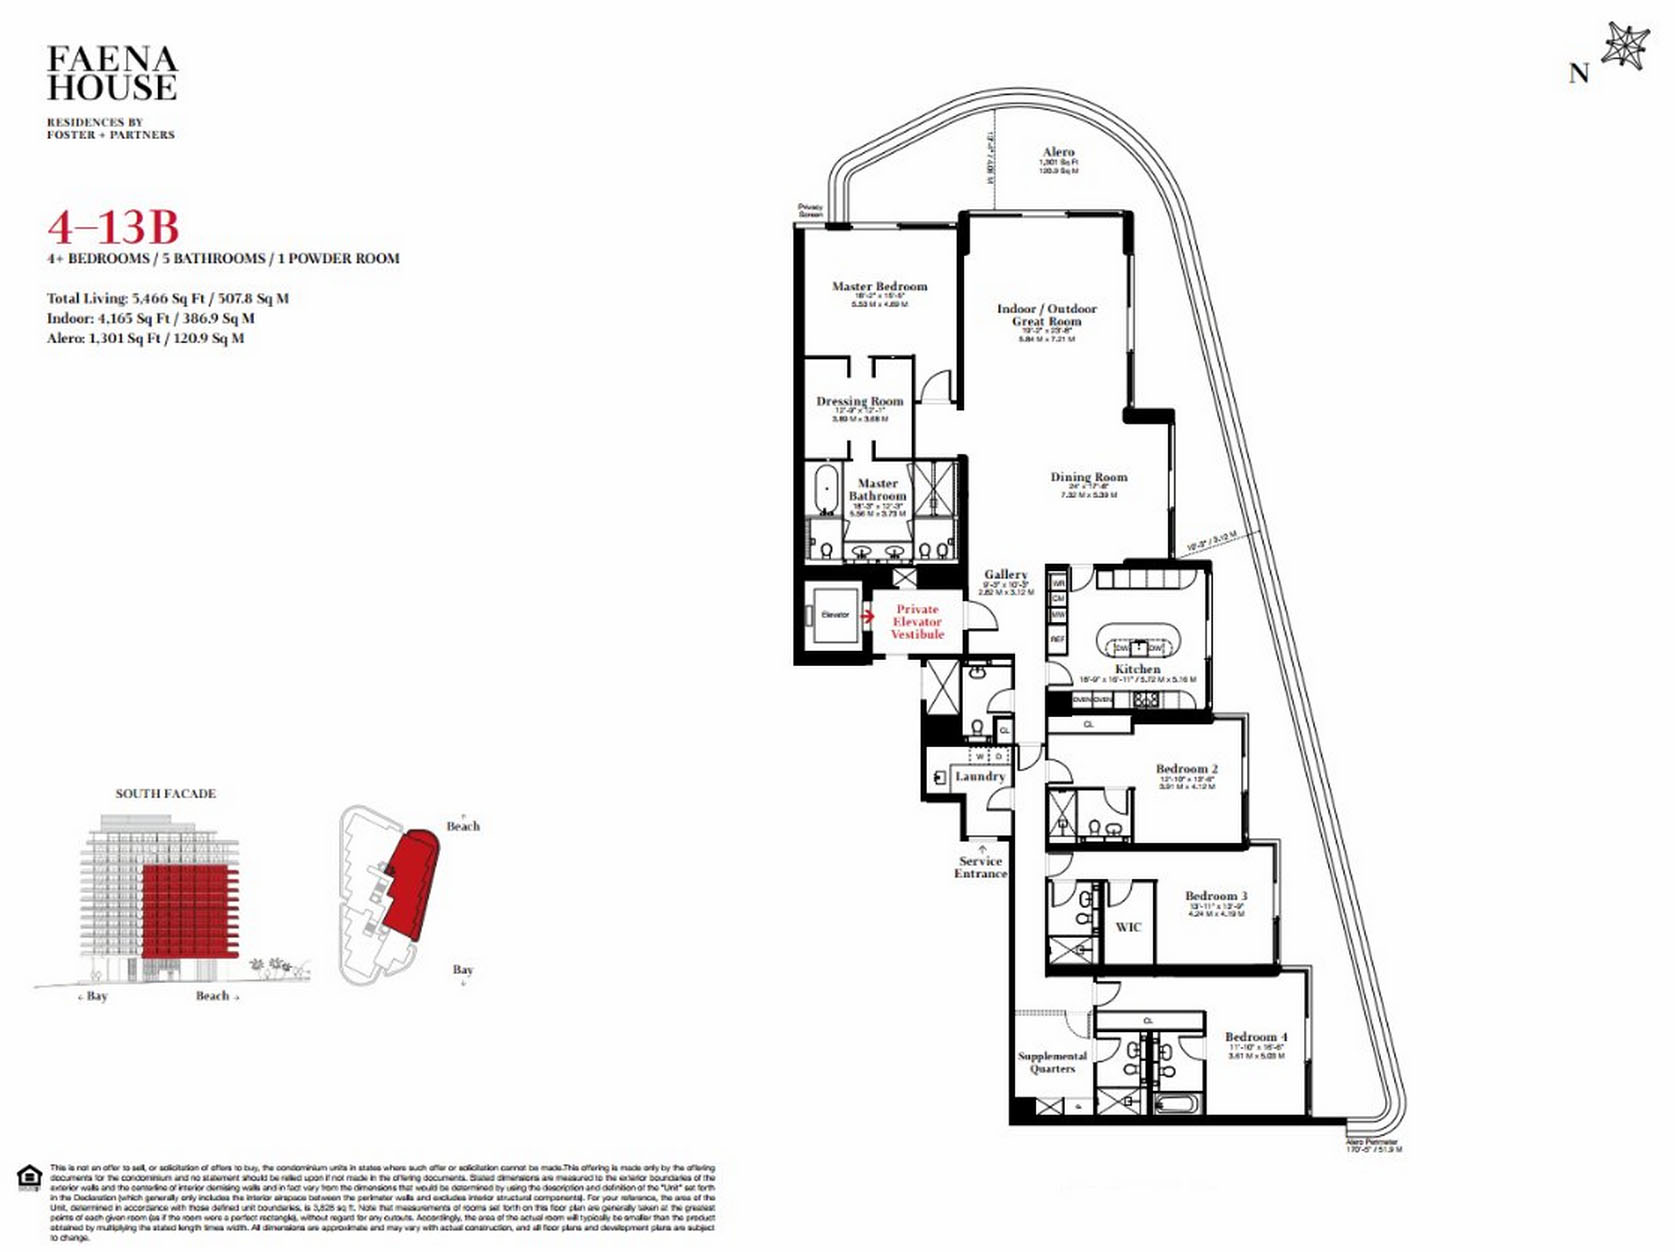 Faena House - Floorplan 4